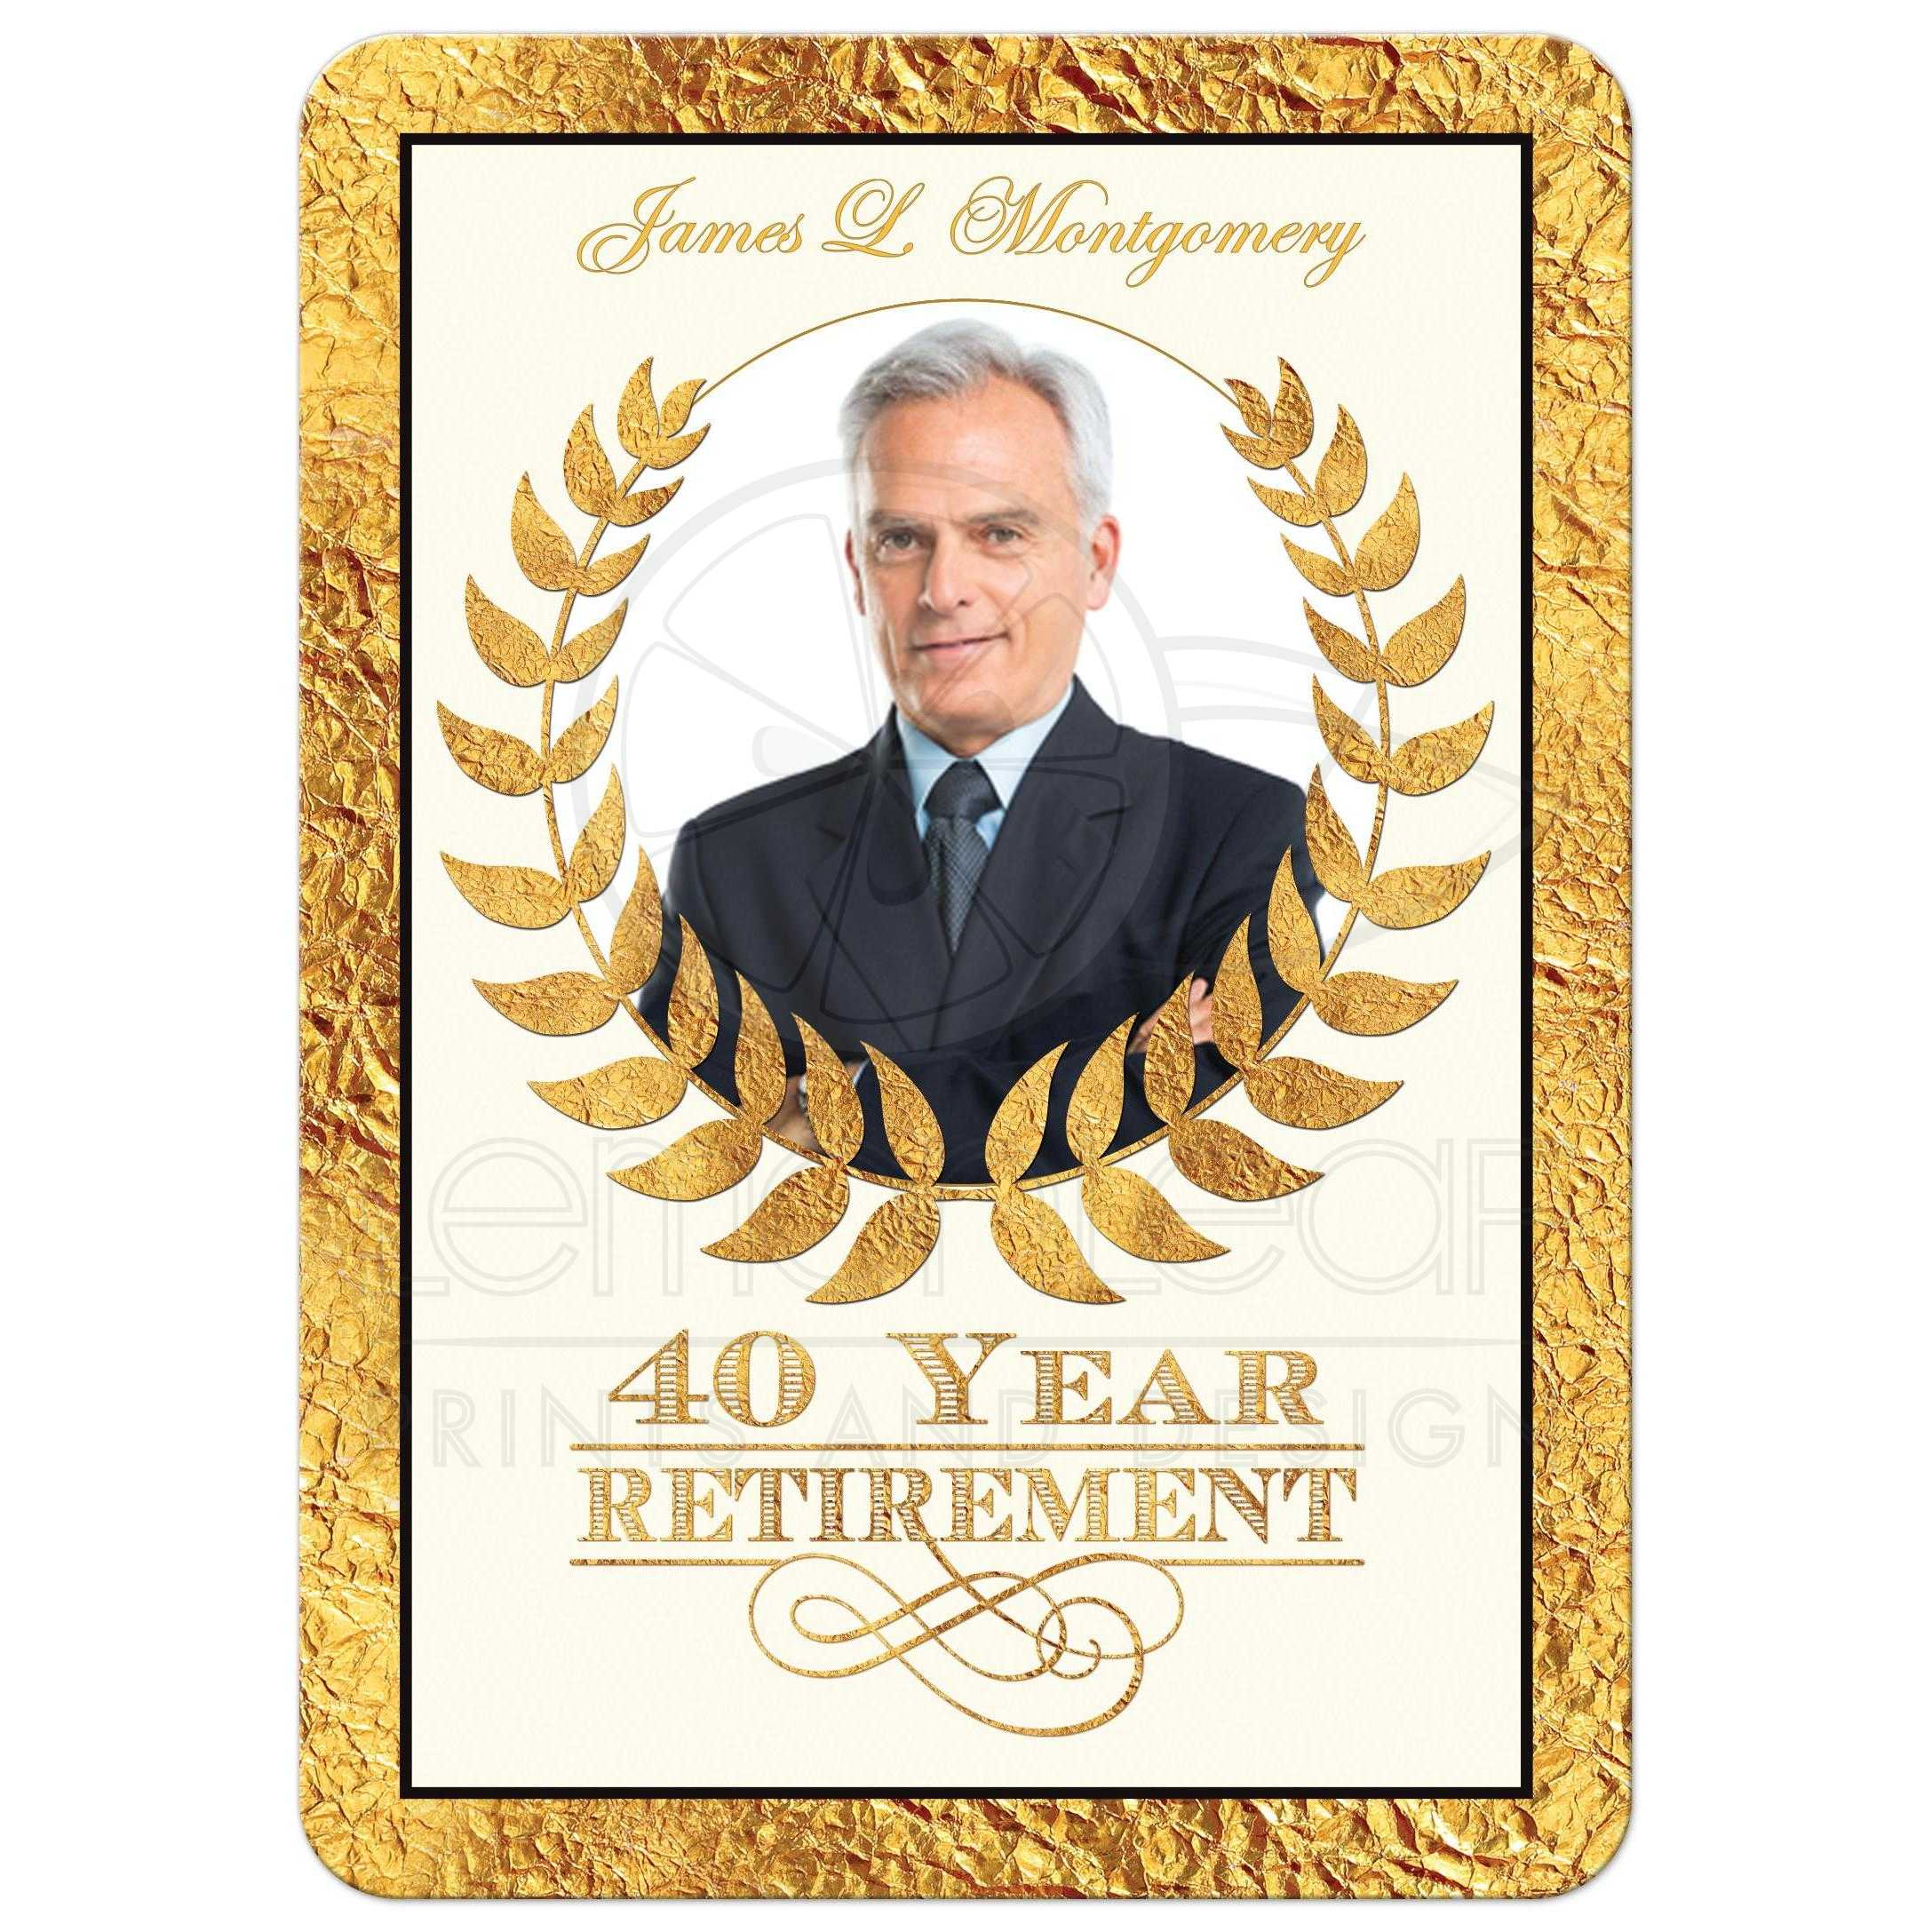 40 year retirement party invitation